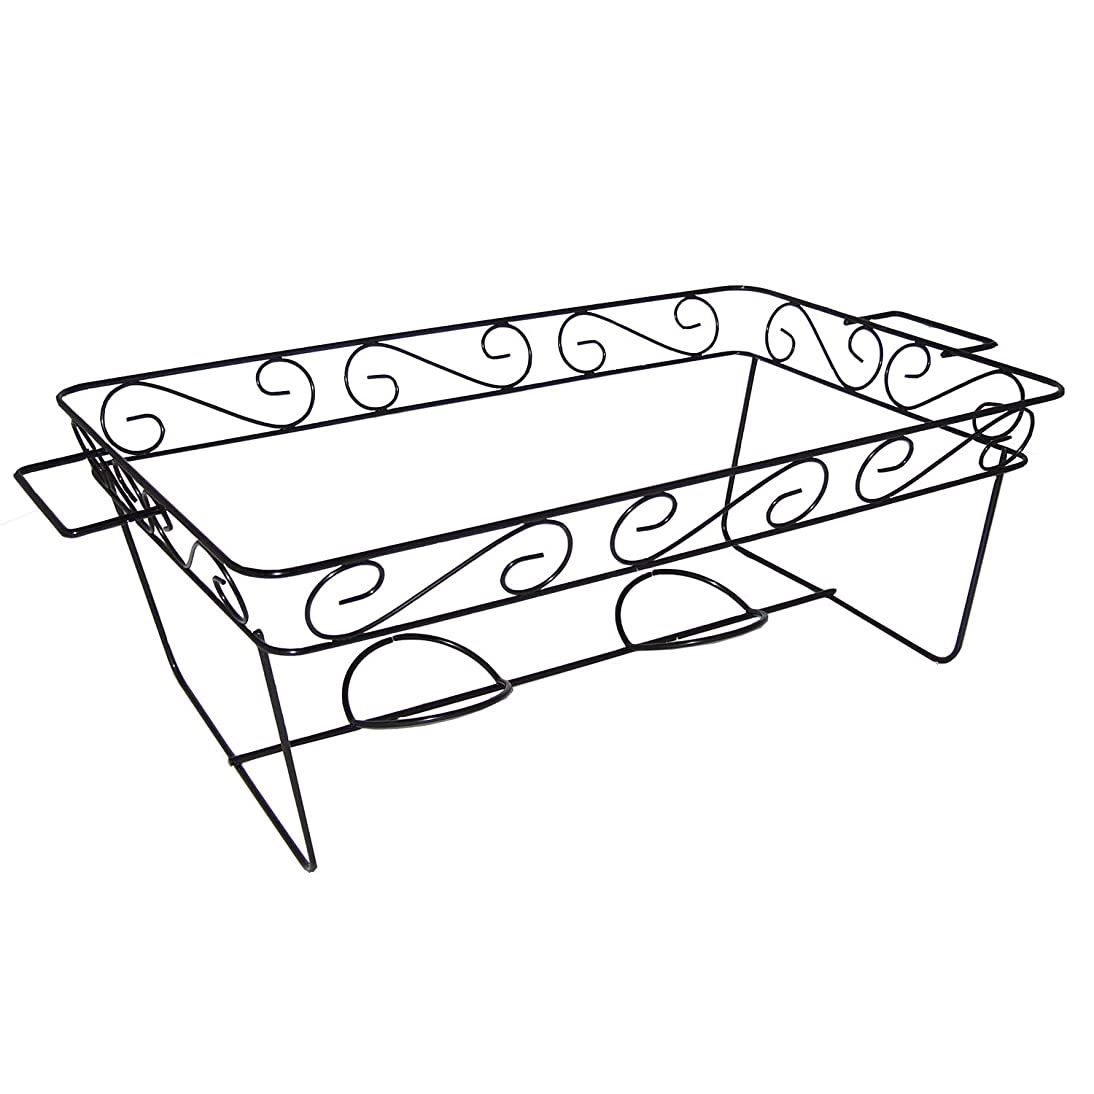 Party Essentials Elegance Full Size Heavy Duty Chafing Rack, Decorative Wire Buffet Rack Stand, Serving Trays Frame Food Warmer, Black (Case of 12) spob345642511158